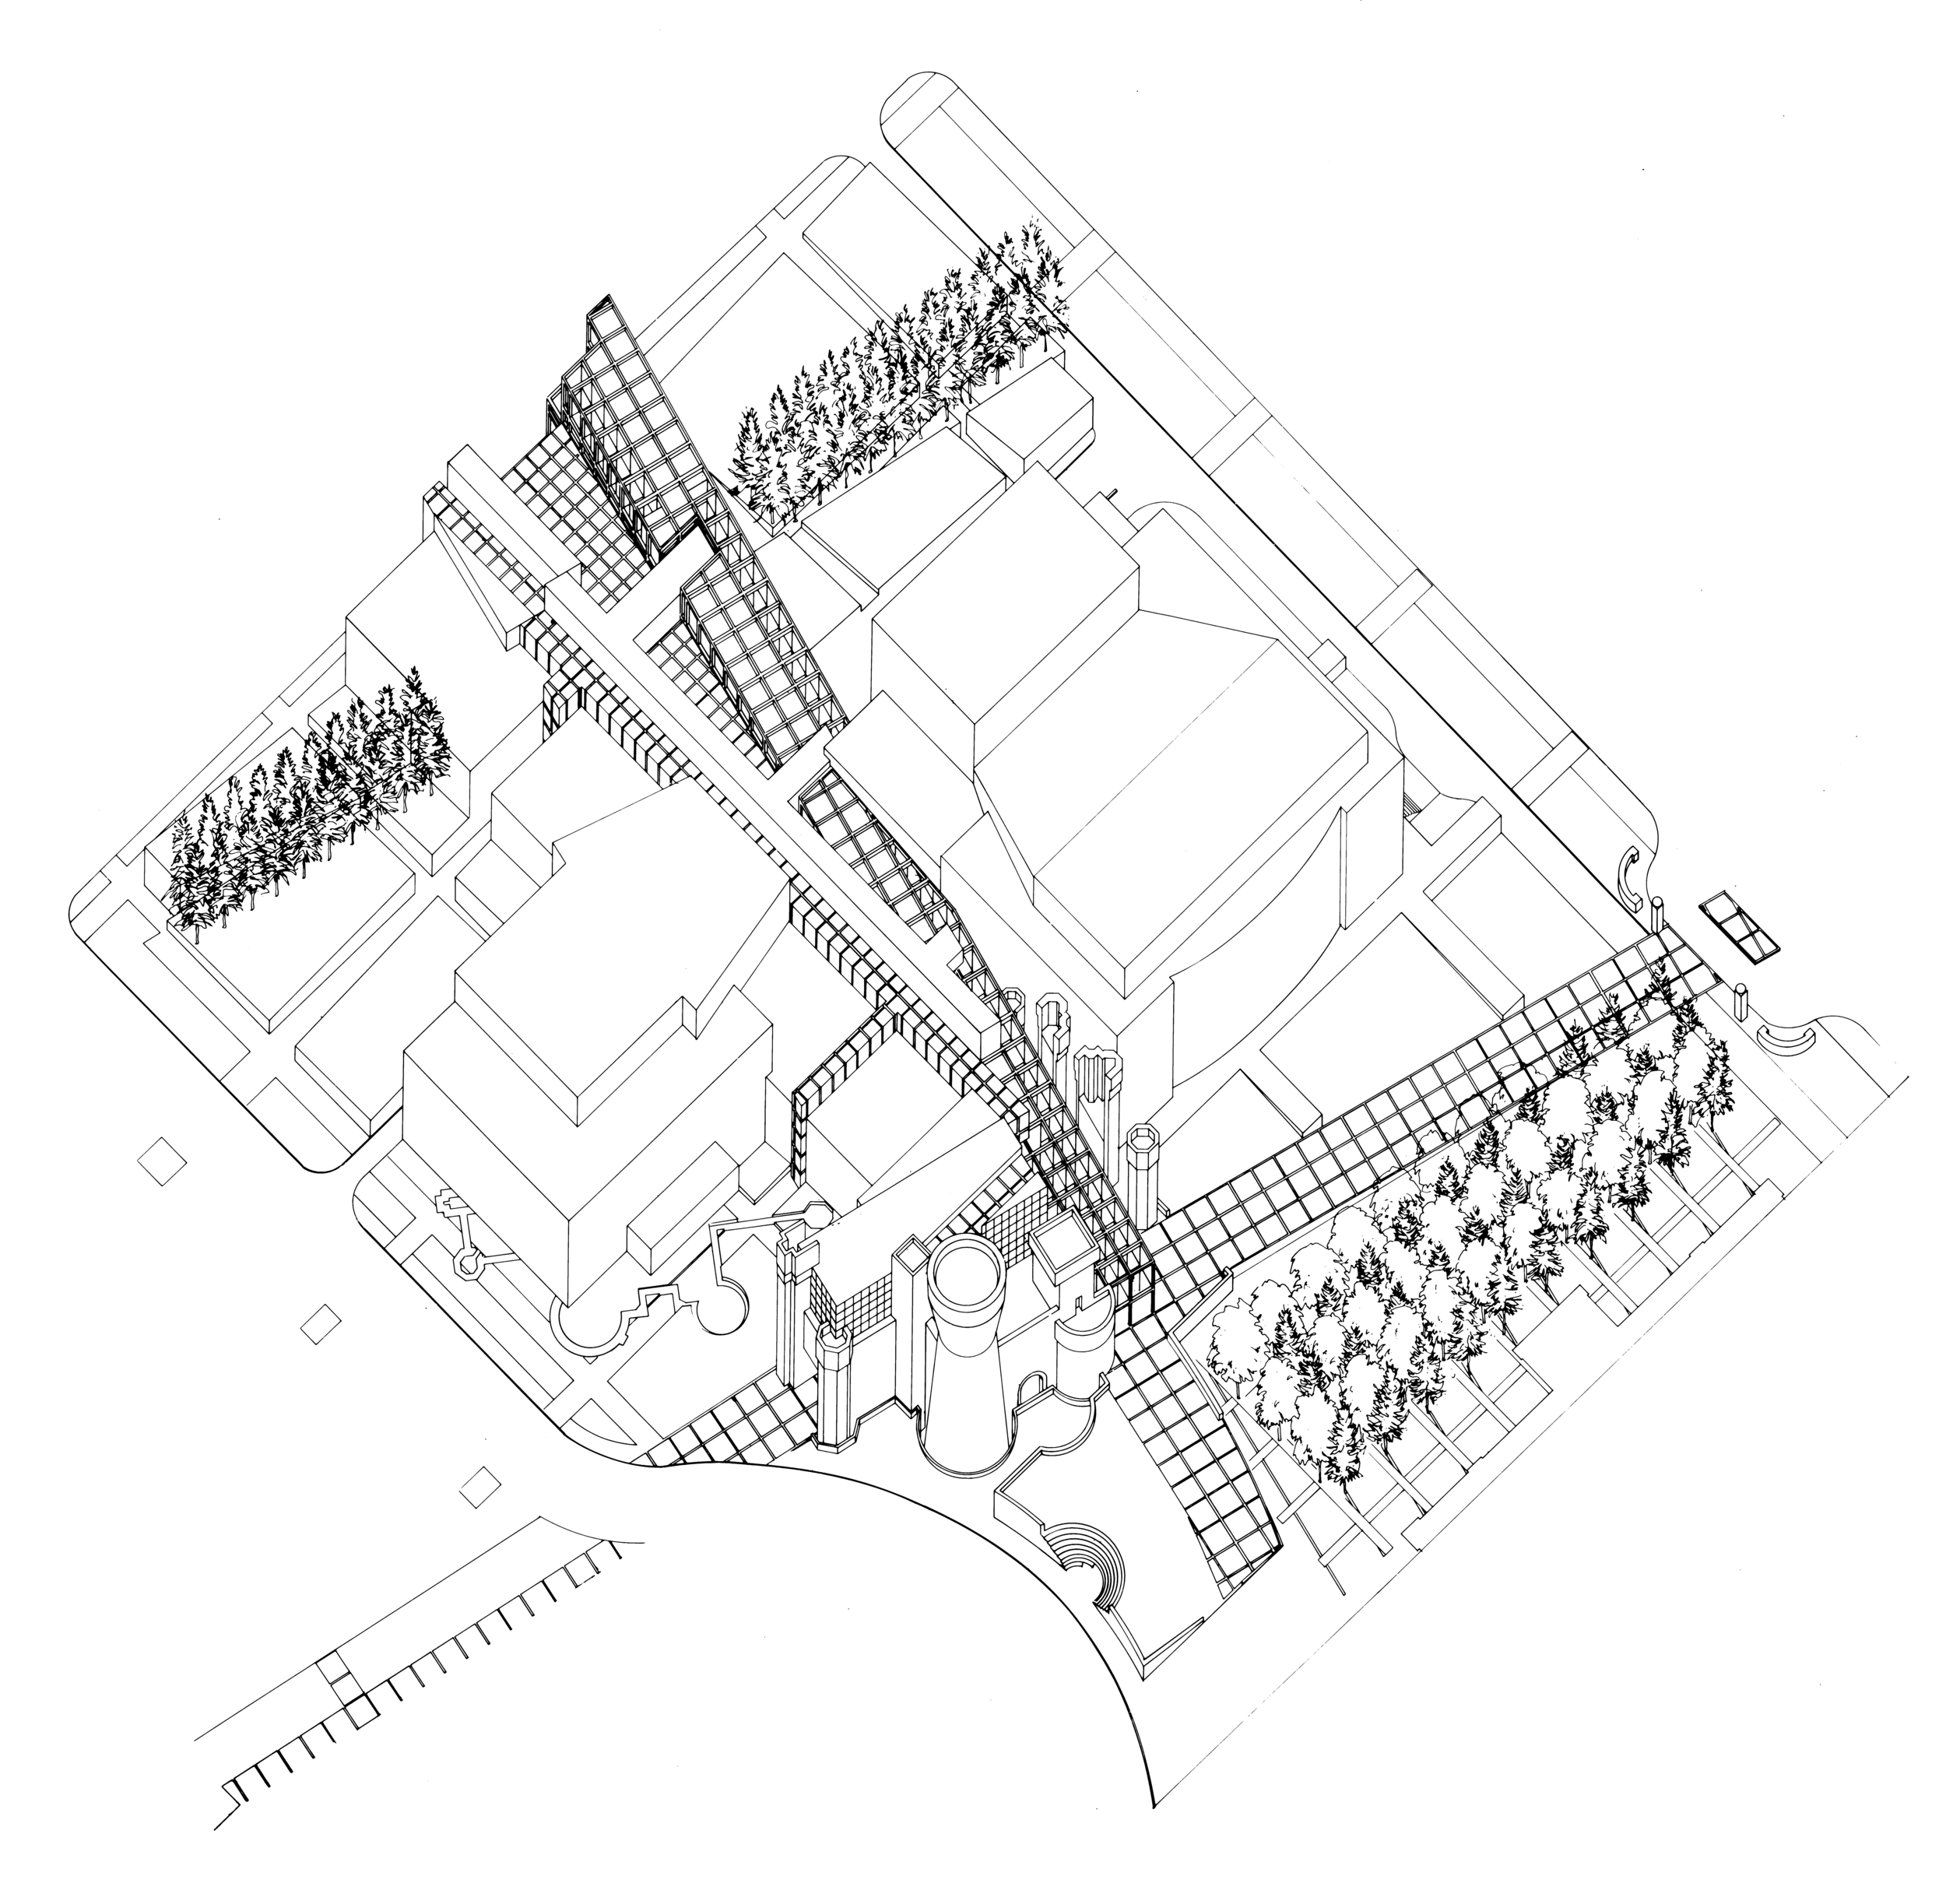 Wexner Center axonometric drawing